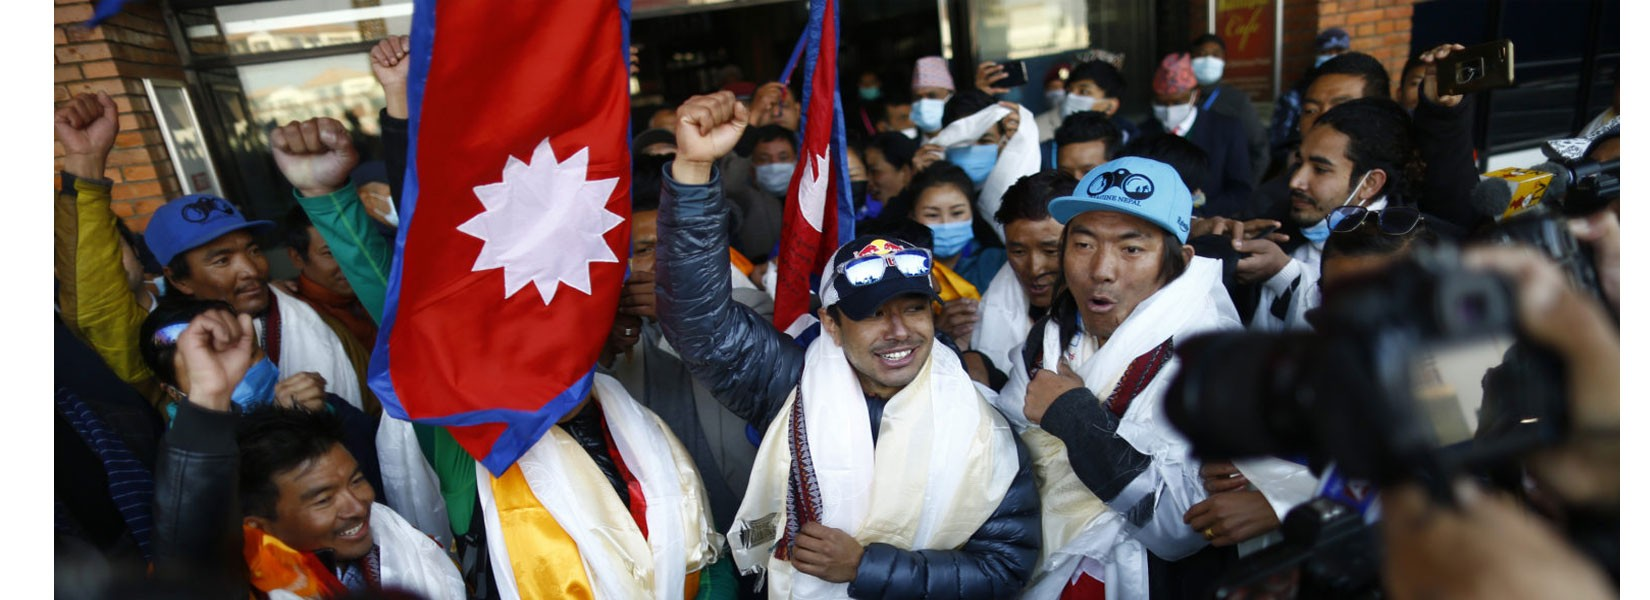 K2 winter expedition team arrives back in Nepal to hero's welcome